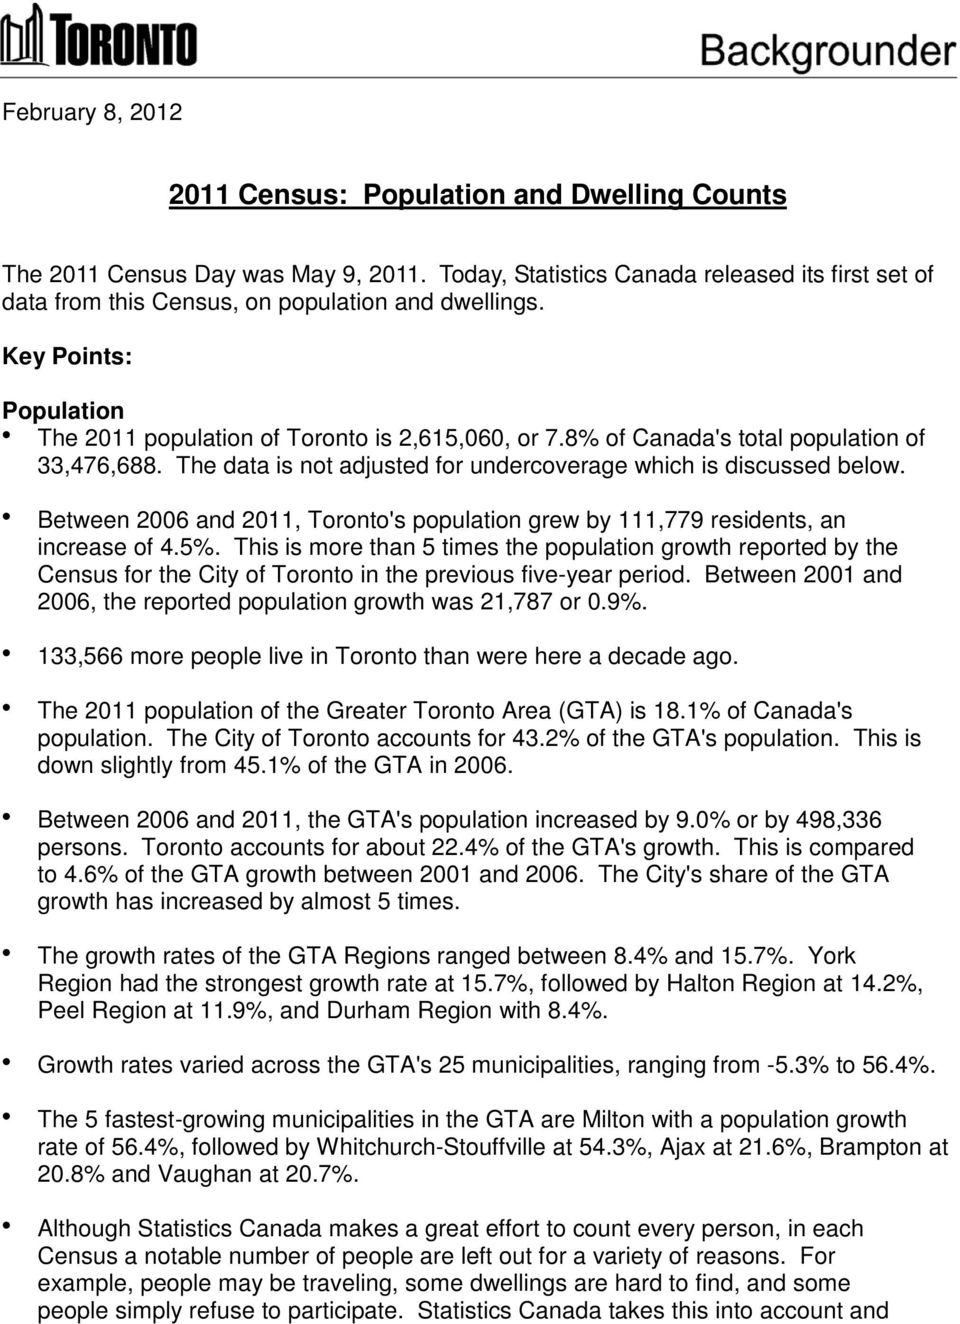 Between 2006 and 2011, Toronto's population grew by 111,779 residents, an increase of 4.5%.